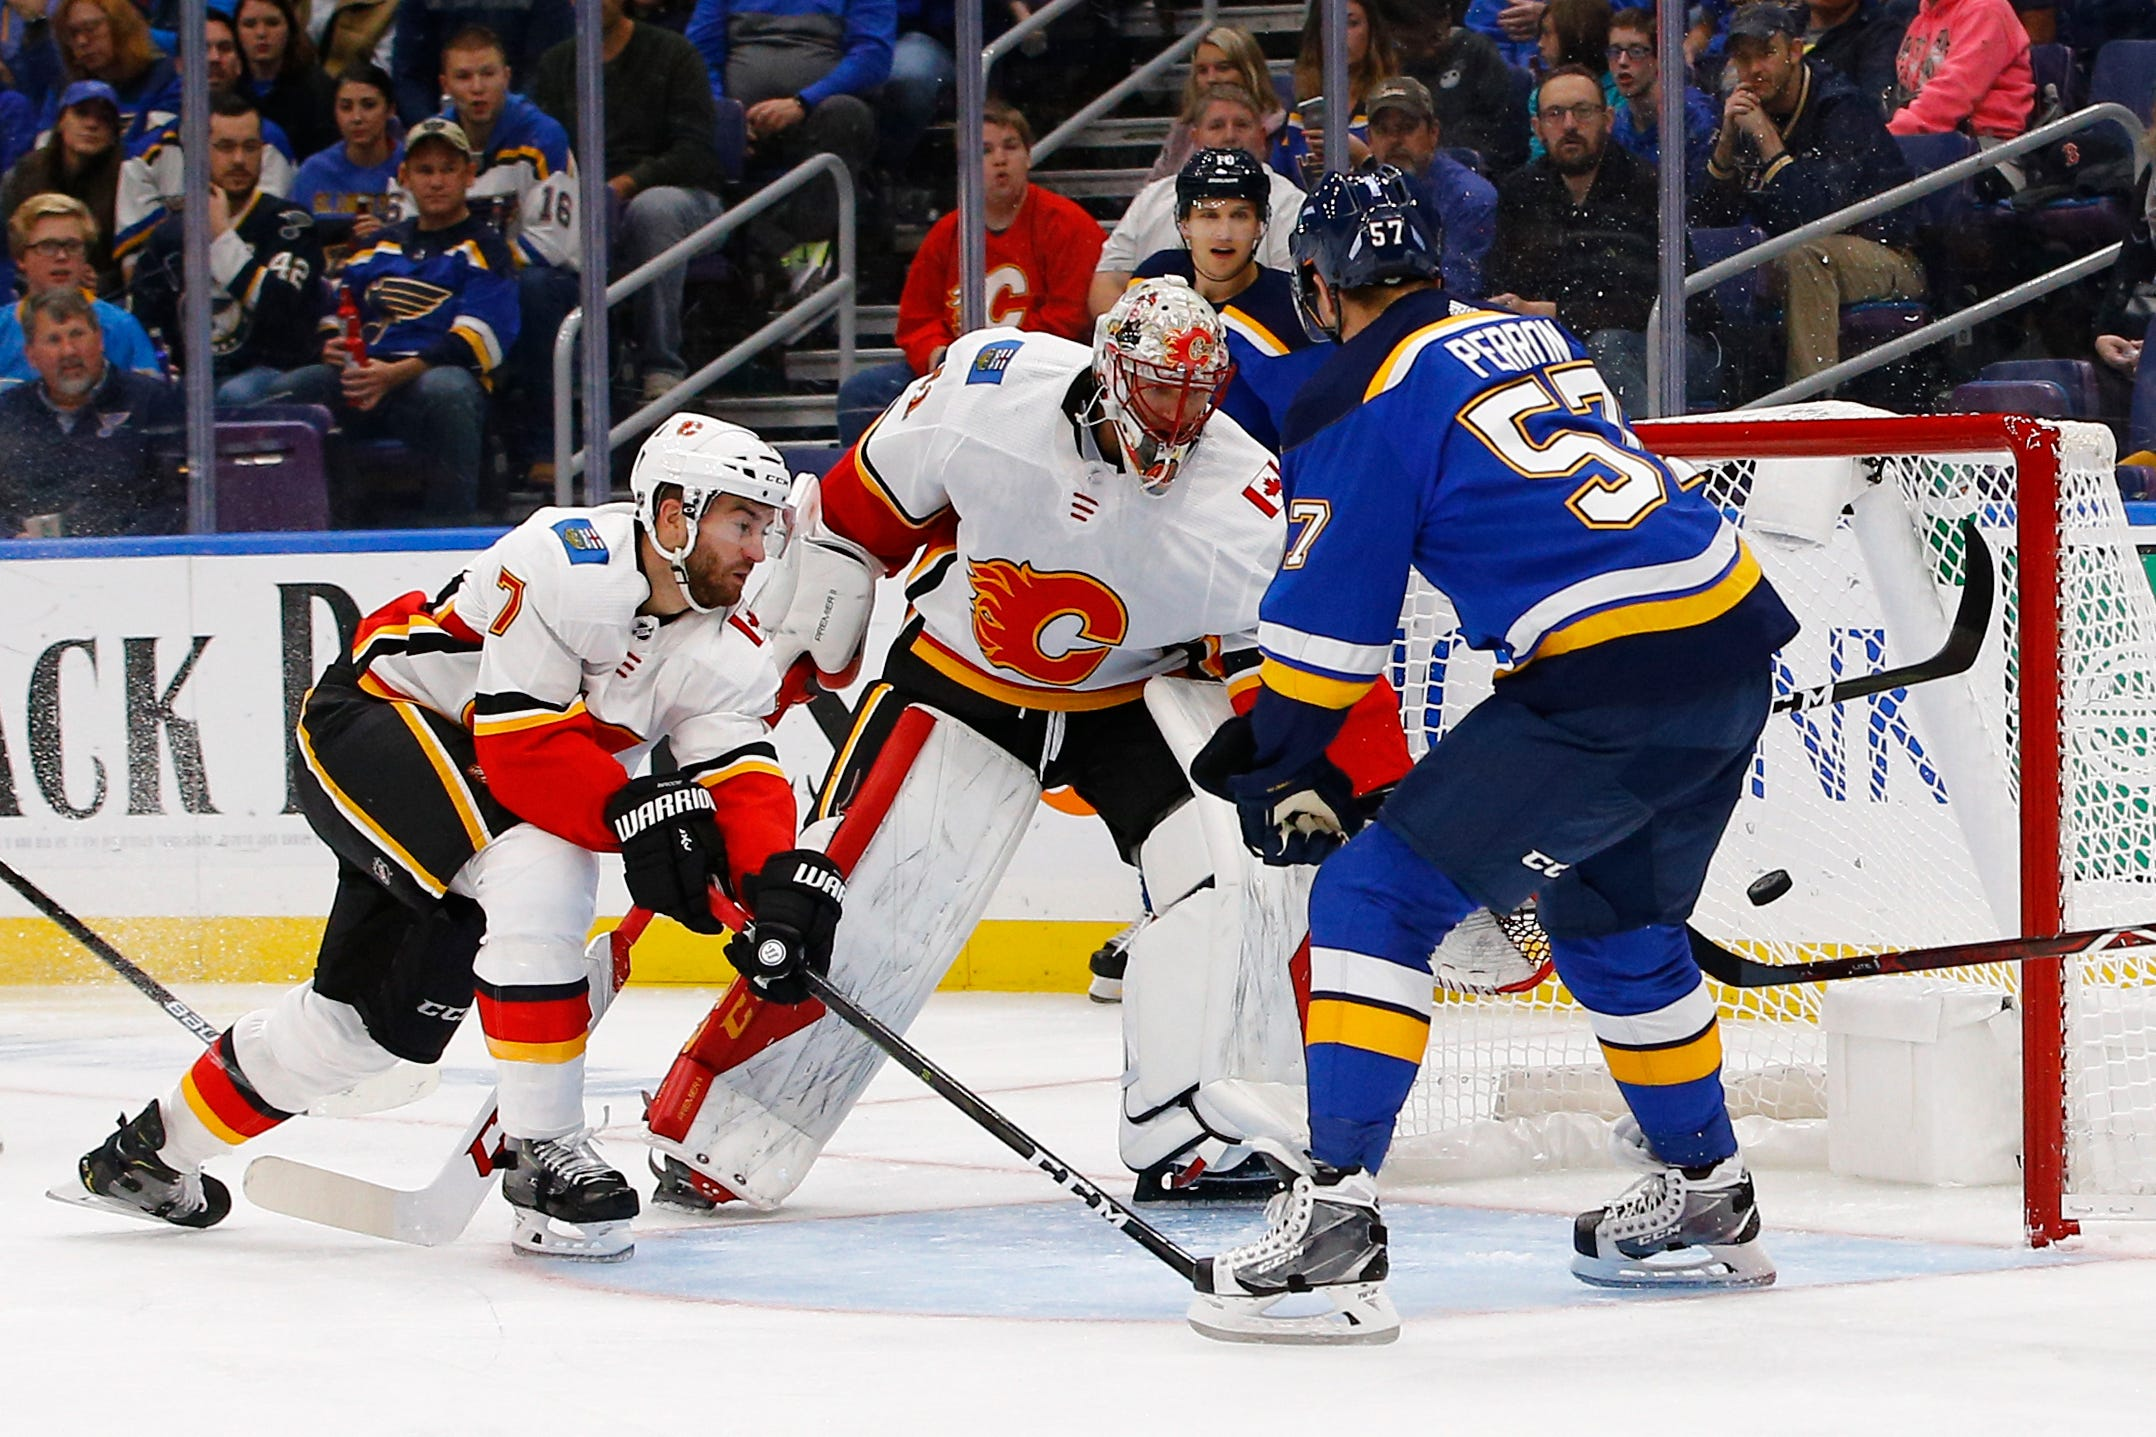 Perron's hat trick lifts Blues to over Flames 5-3